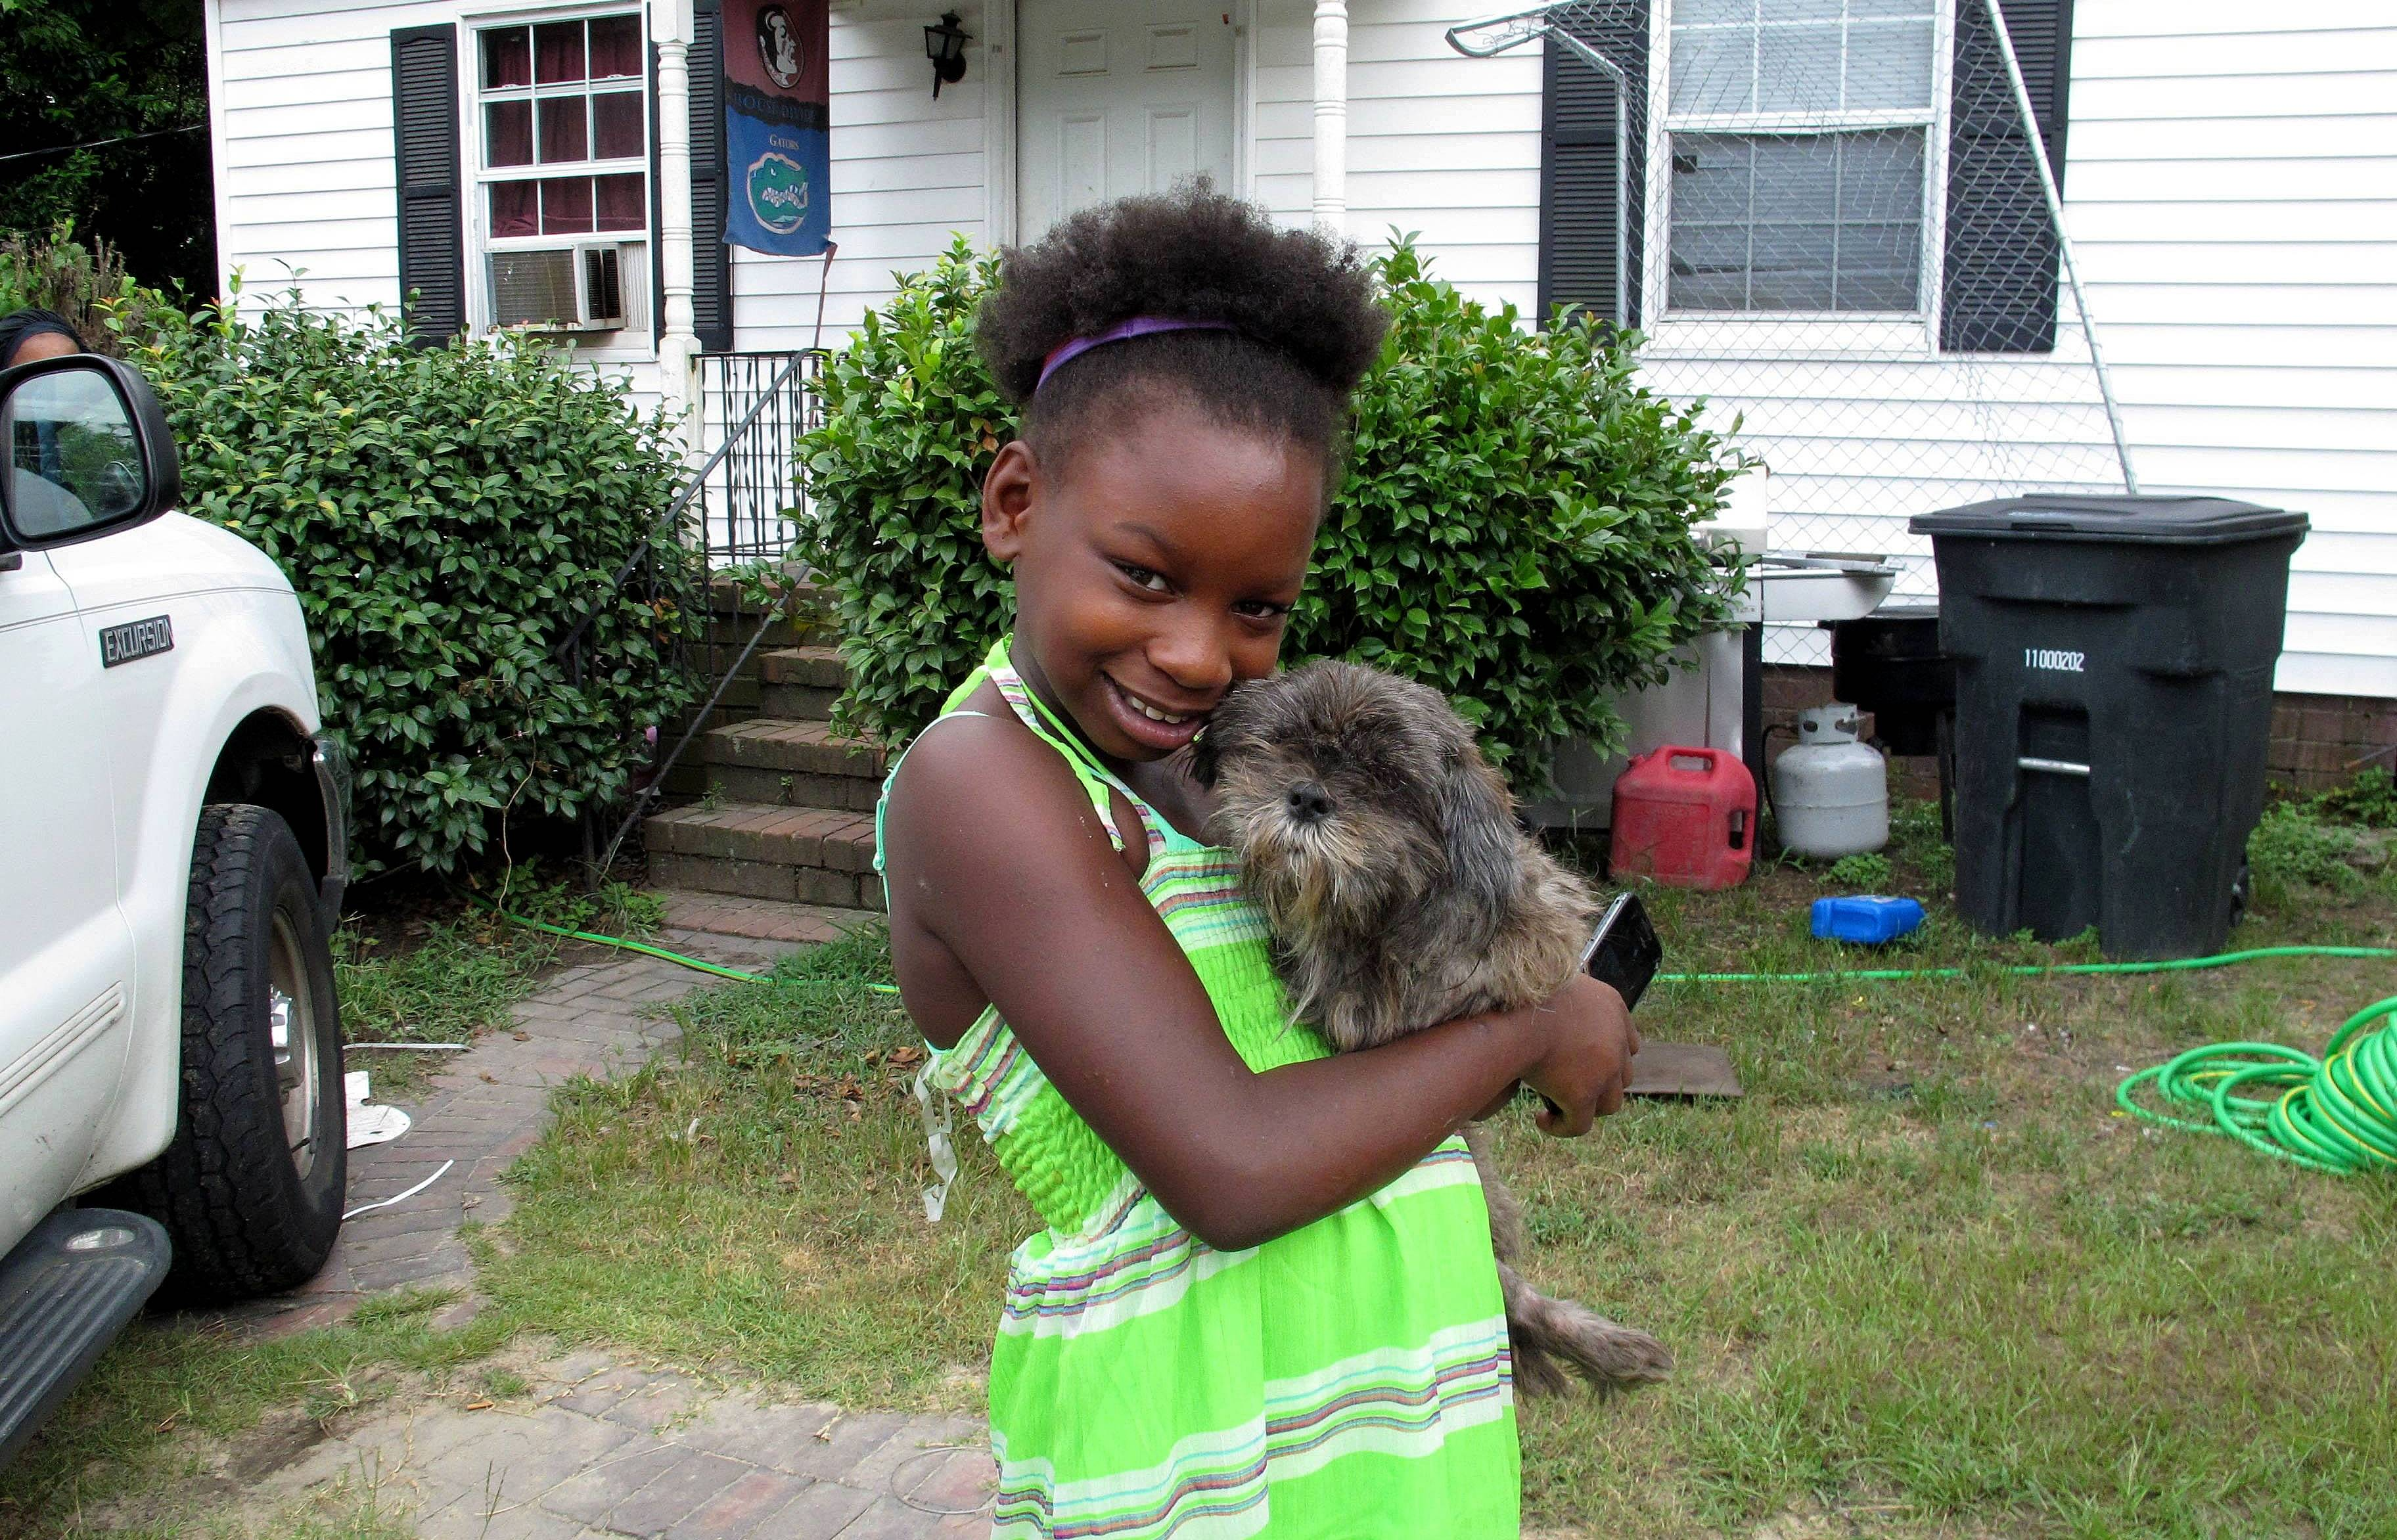 Regina Harrell, 9, holds her dog, Roscoe, outside her home, in North Augusta, S.C. Regina was taken from her home and her mother charged with a felony after her mother, Debra Harrell, left her alone to play at a nearby park while she worked at McDonald's.